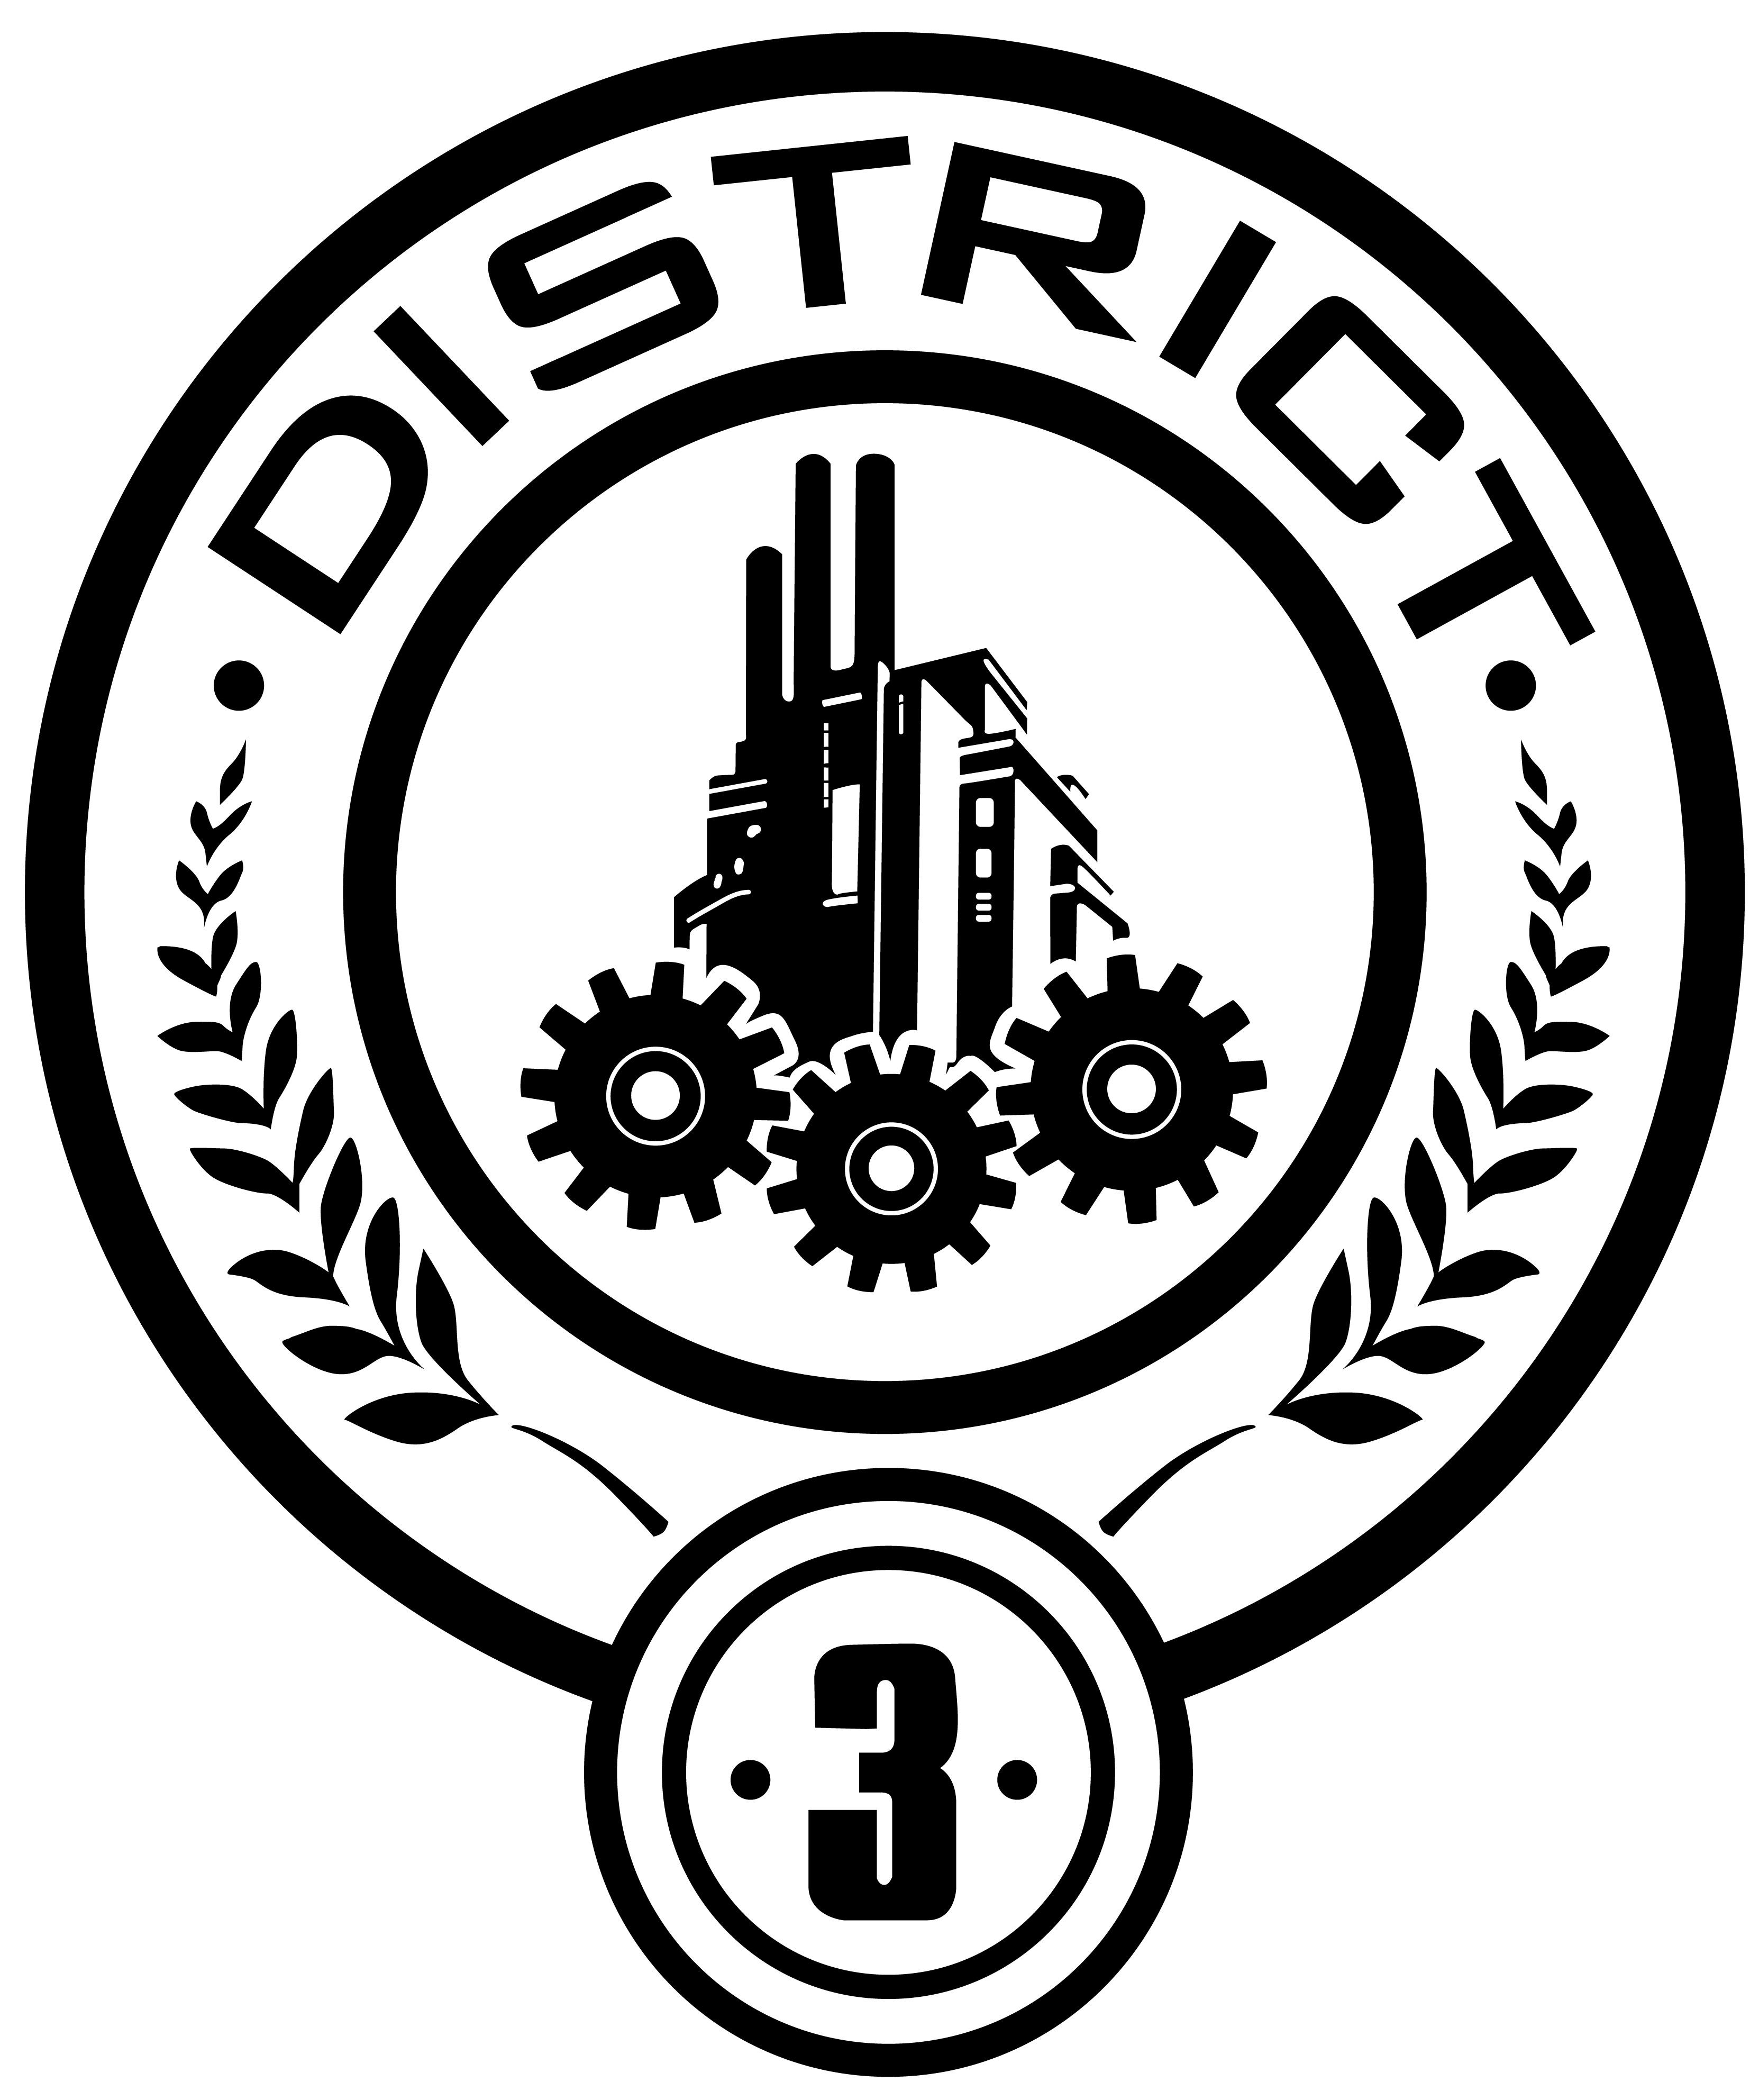 district 3 seal by trebory6 on deviantart